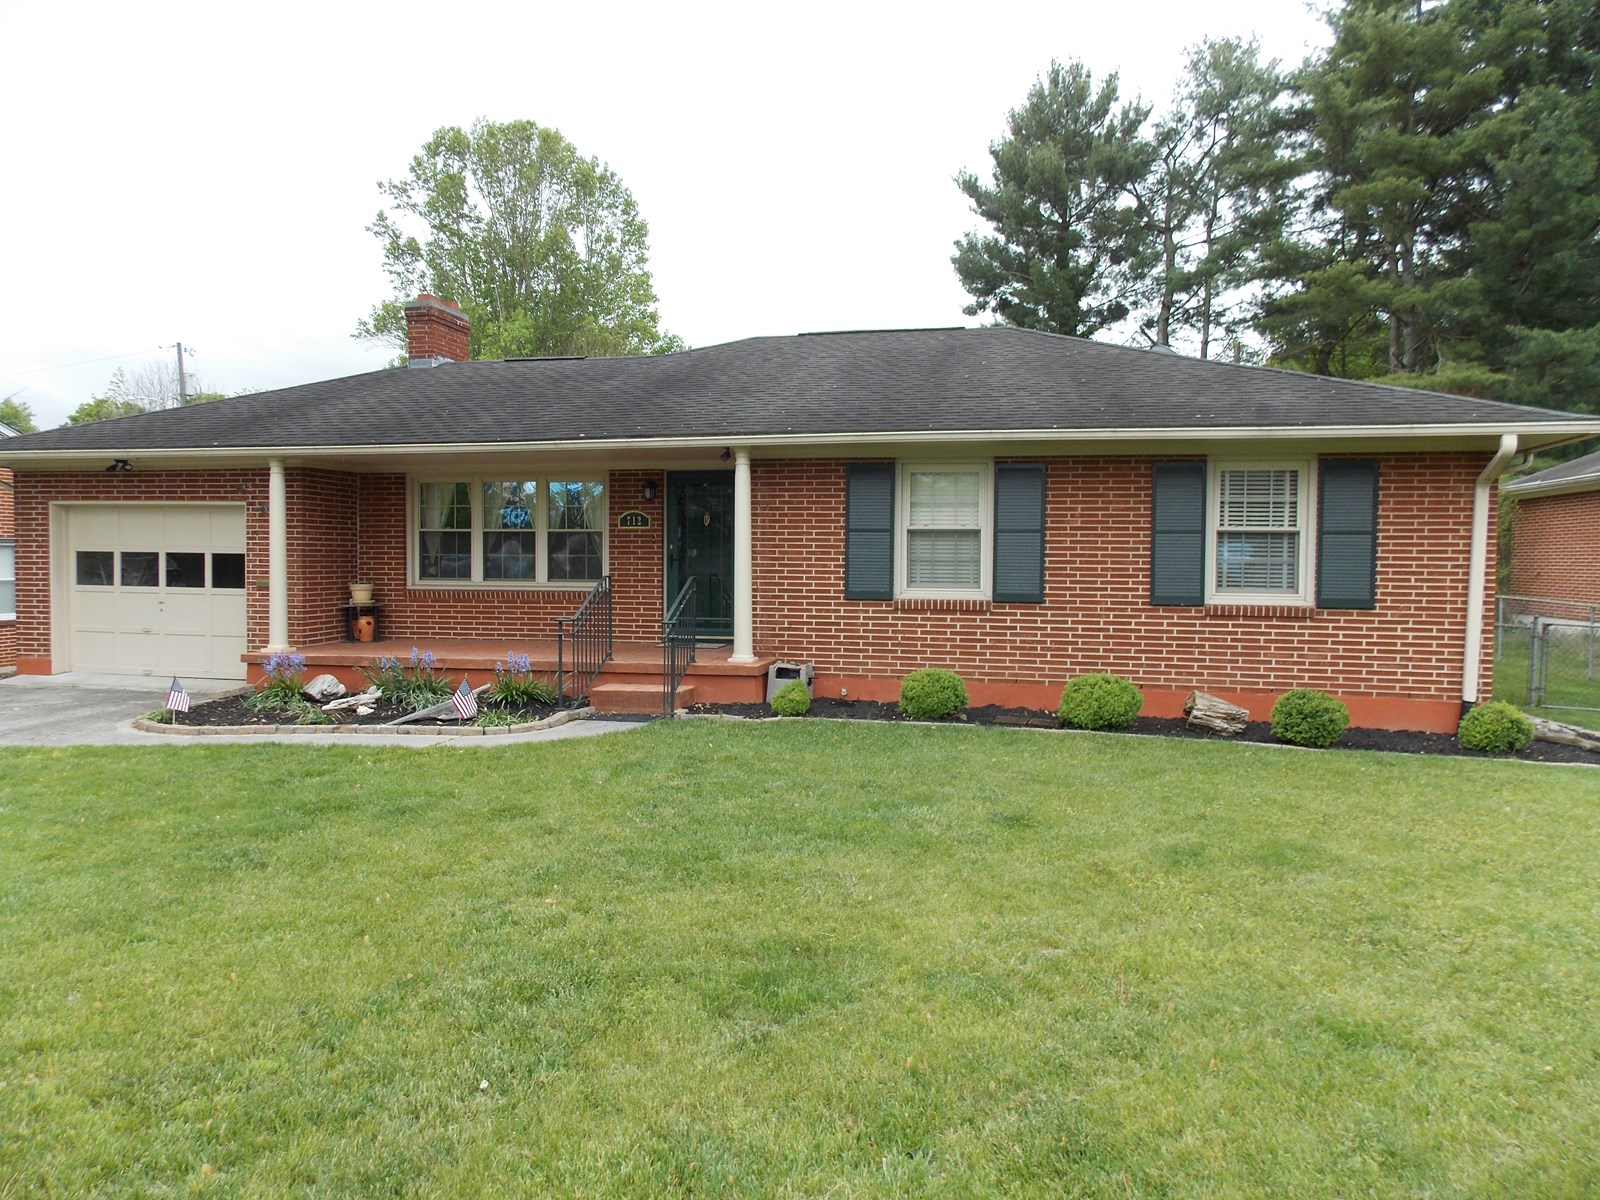 Brick Home for Sale in Radford City